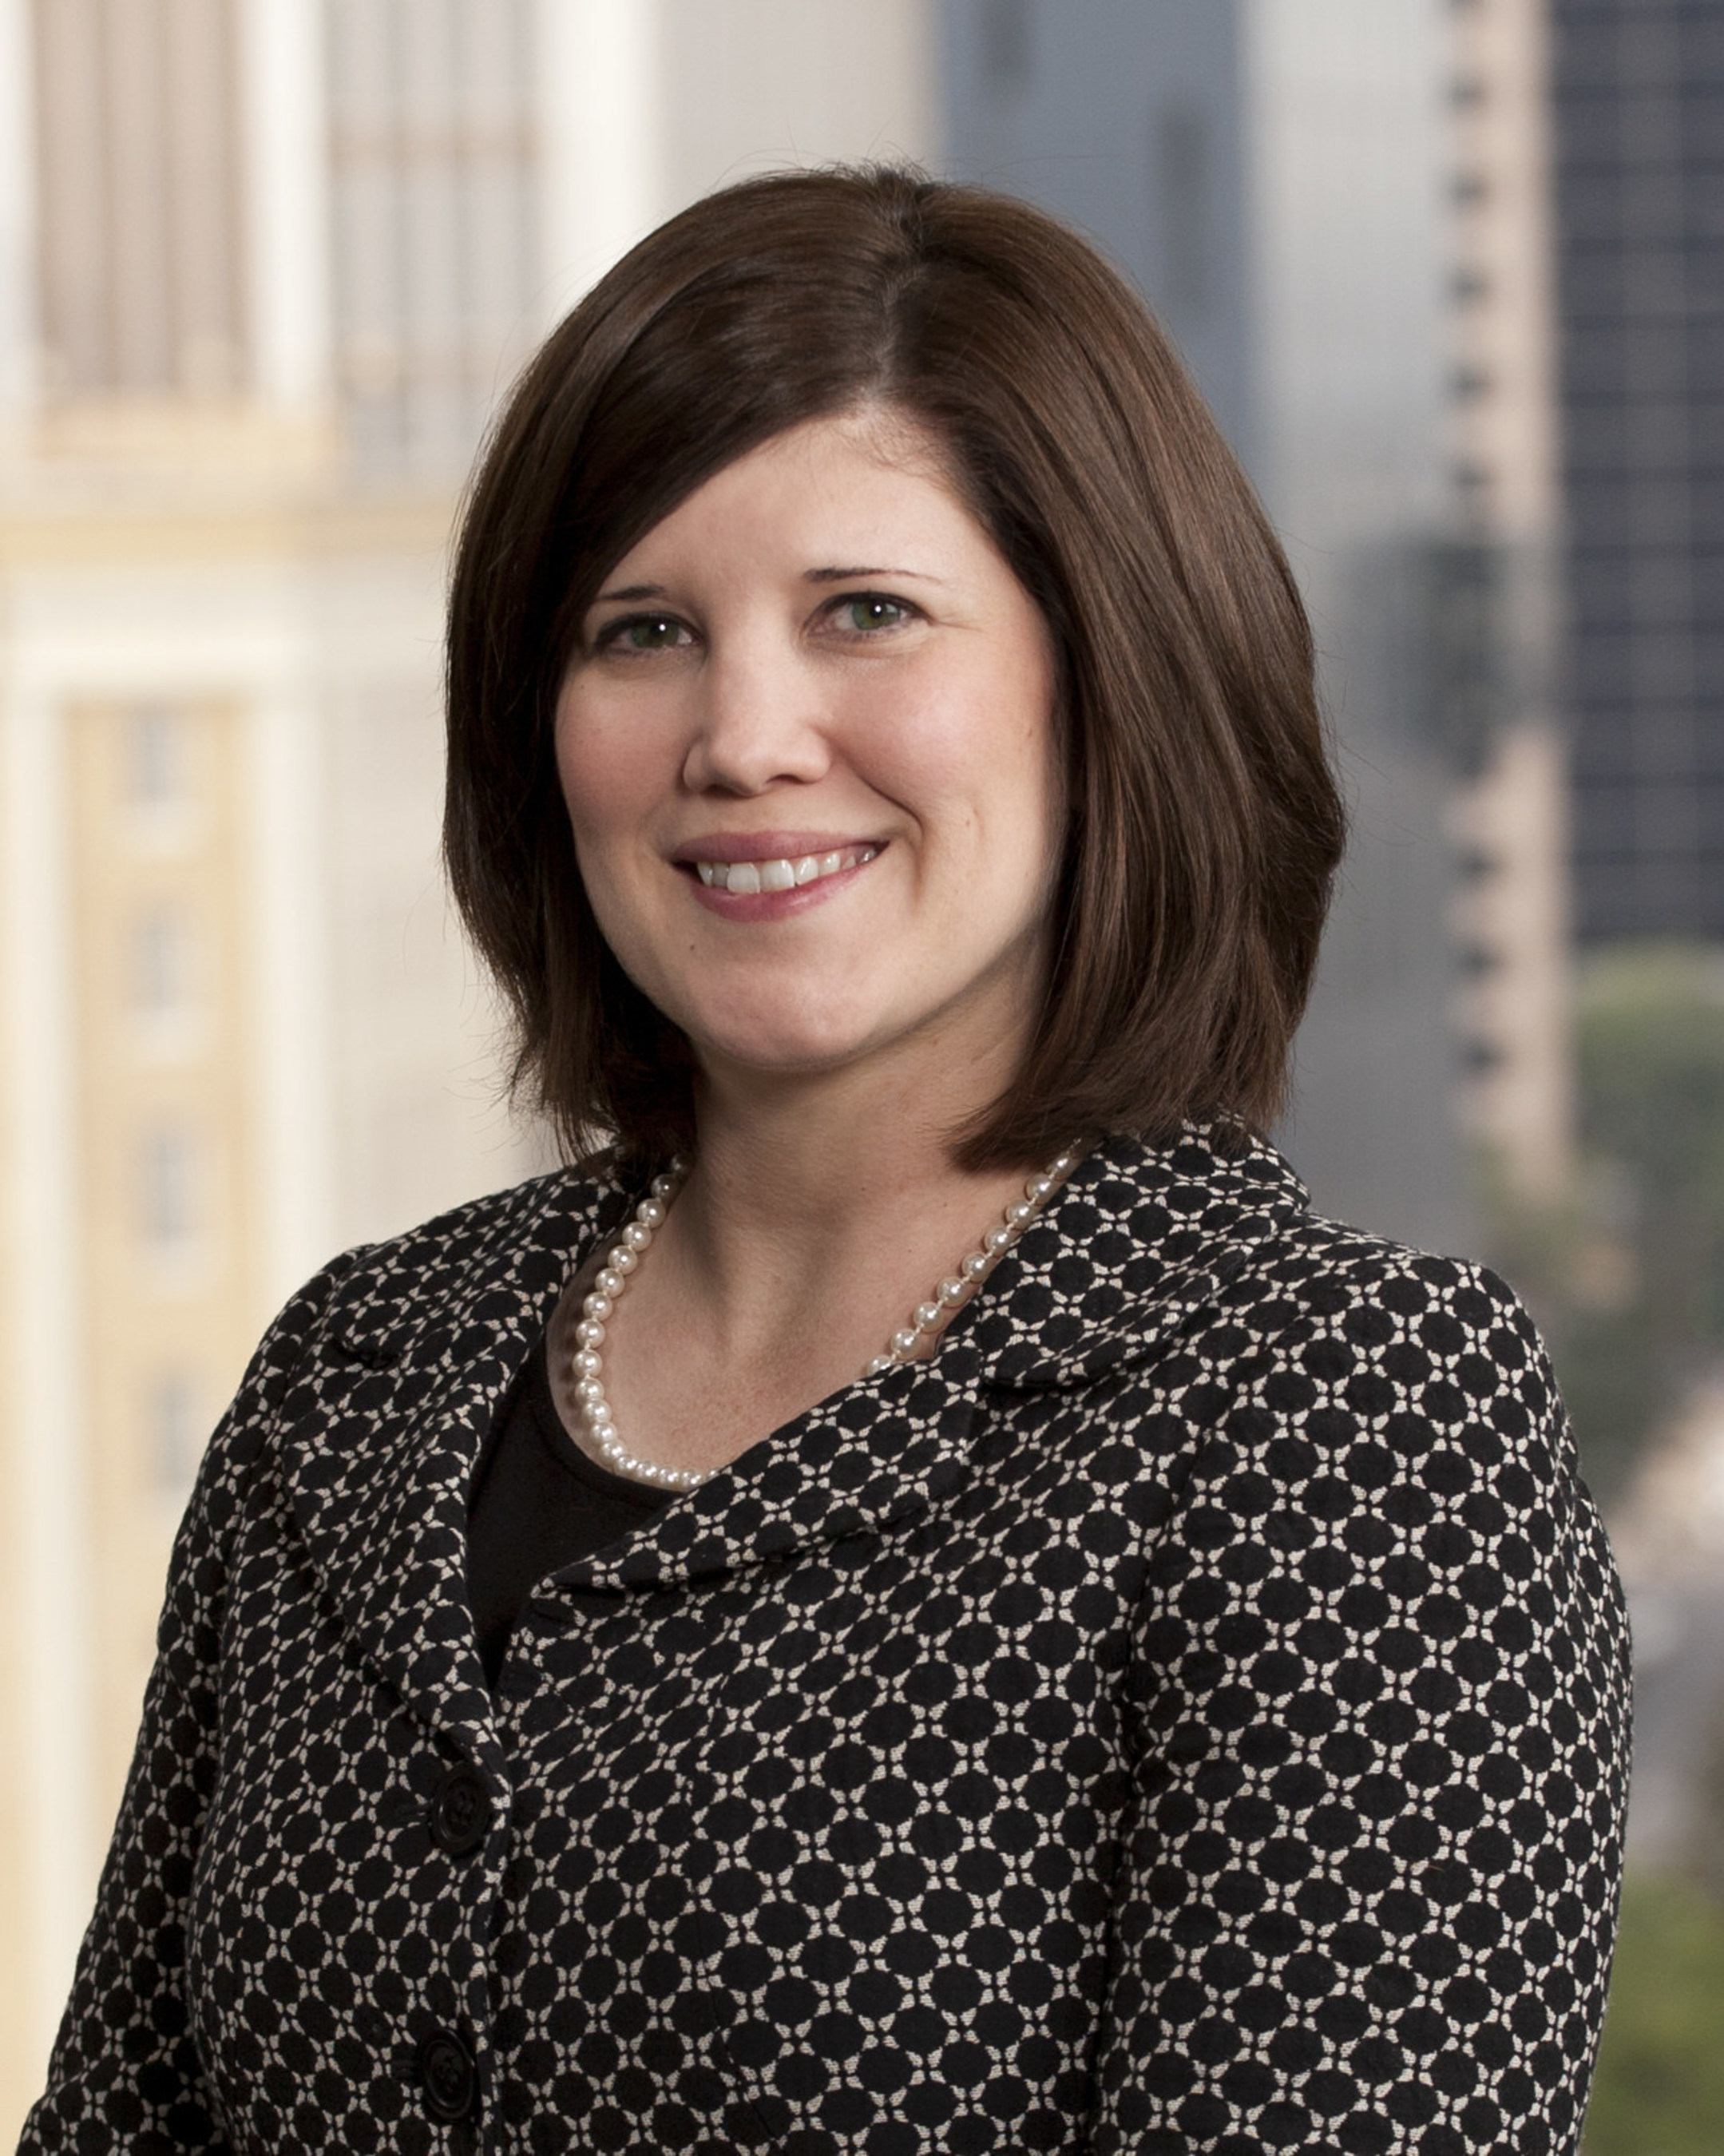 Heather LaSalle Alexis has been selected by McGlinchey Stafford to participate in the 2016 Fellows Program of the Leadership Council on Legal Diversity (LCLD).